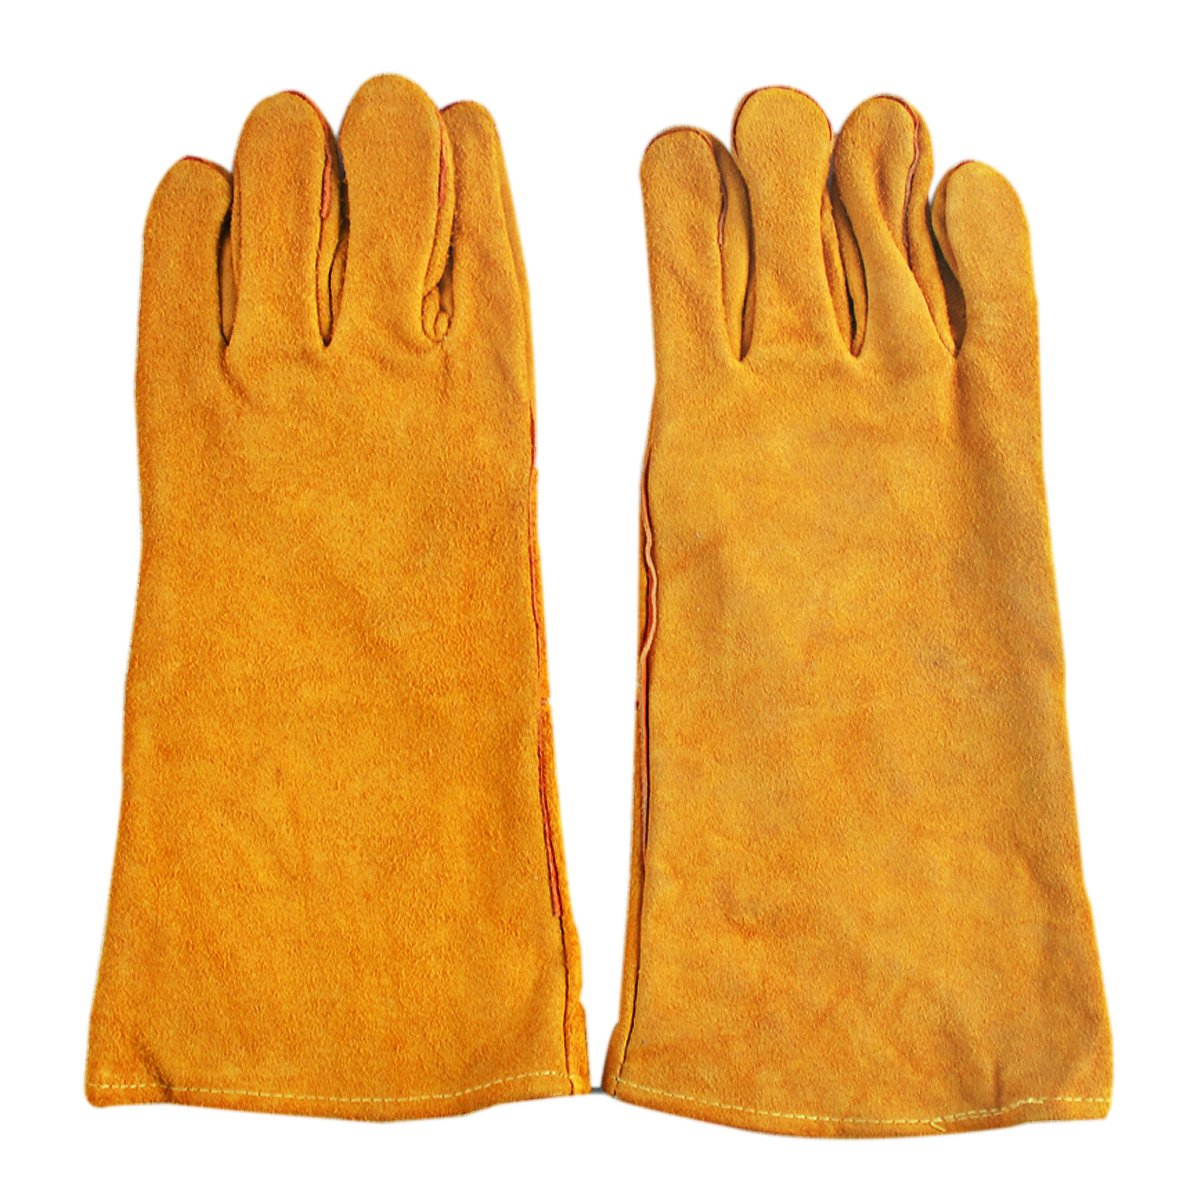 Rstar Professional welding protection Cowhide long welding gloves (Yellow)